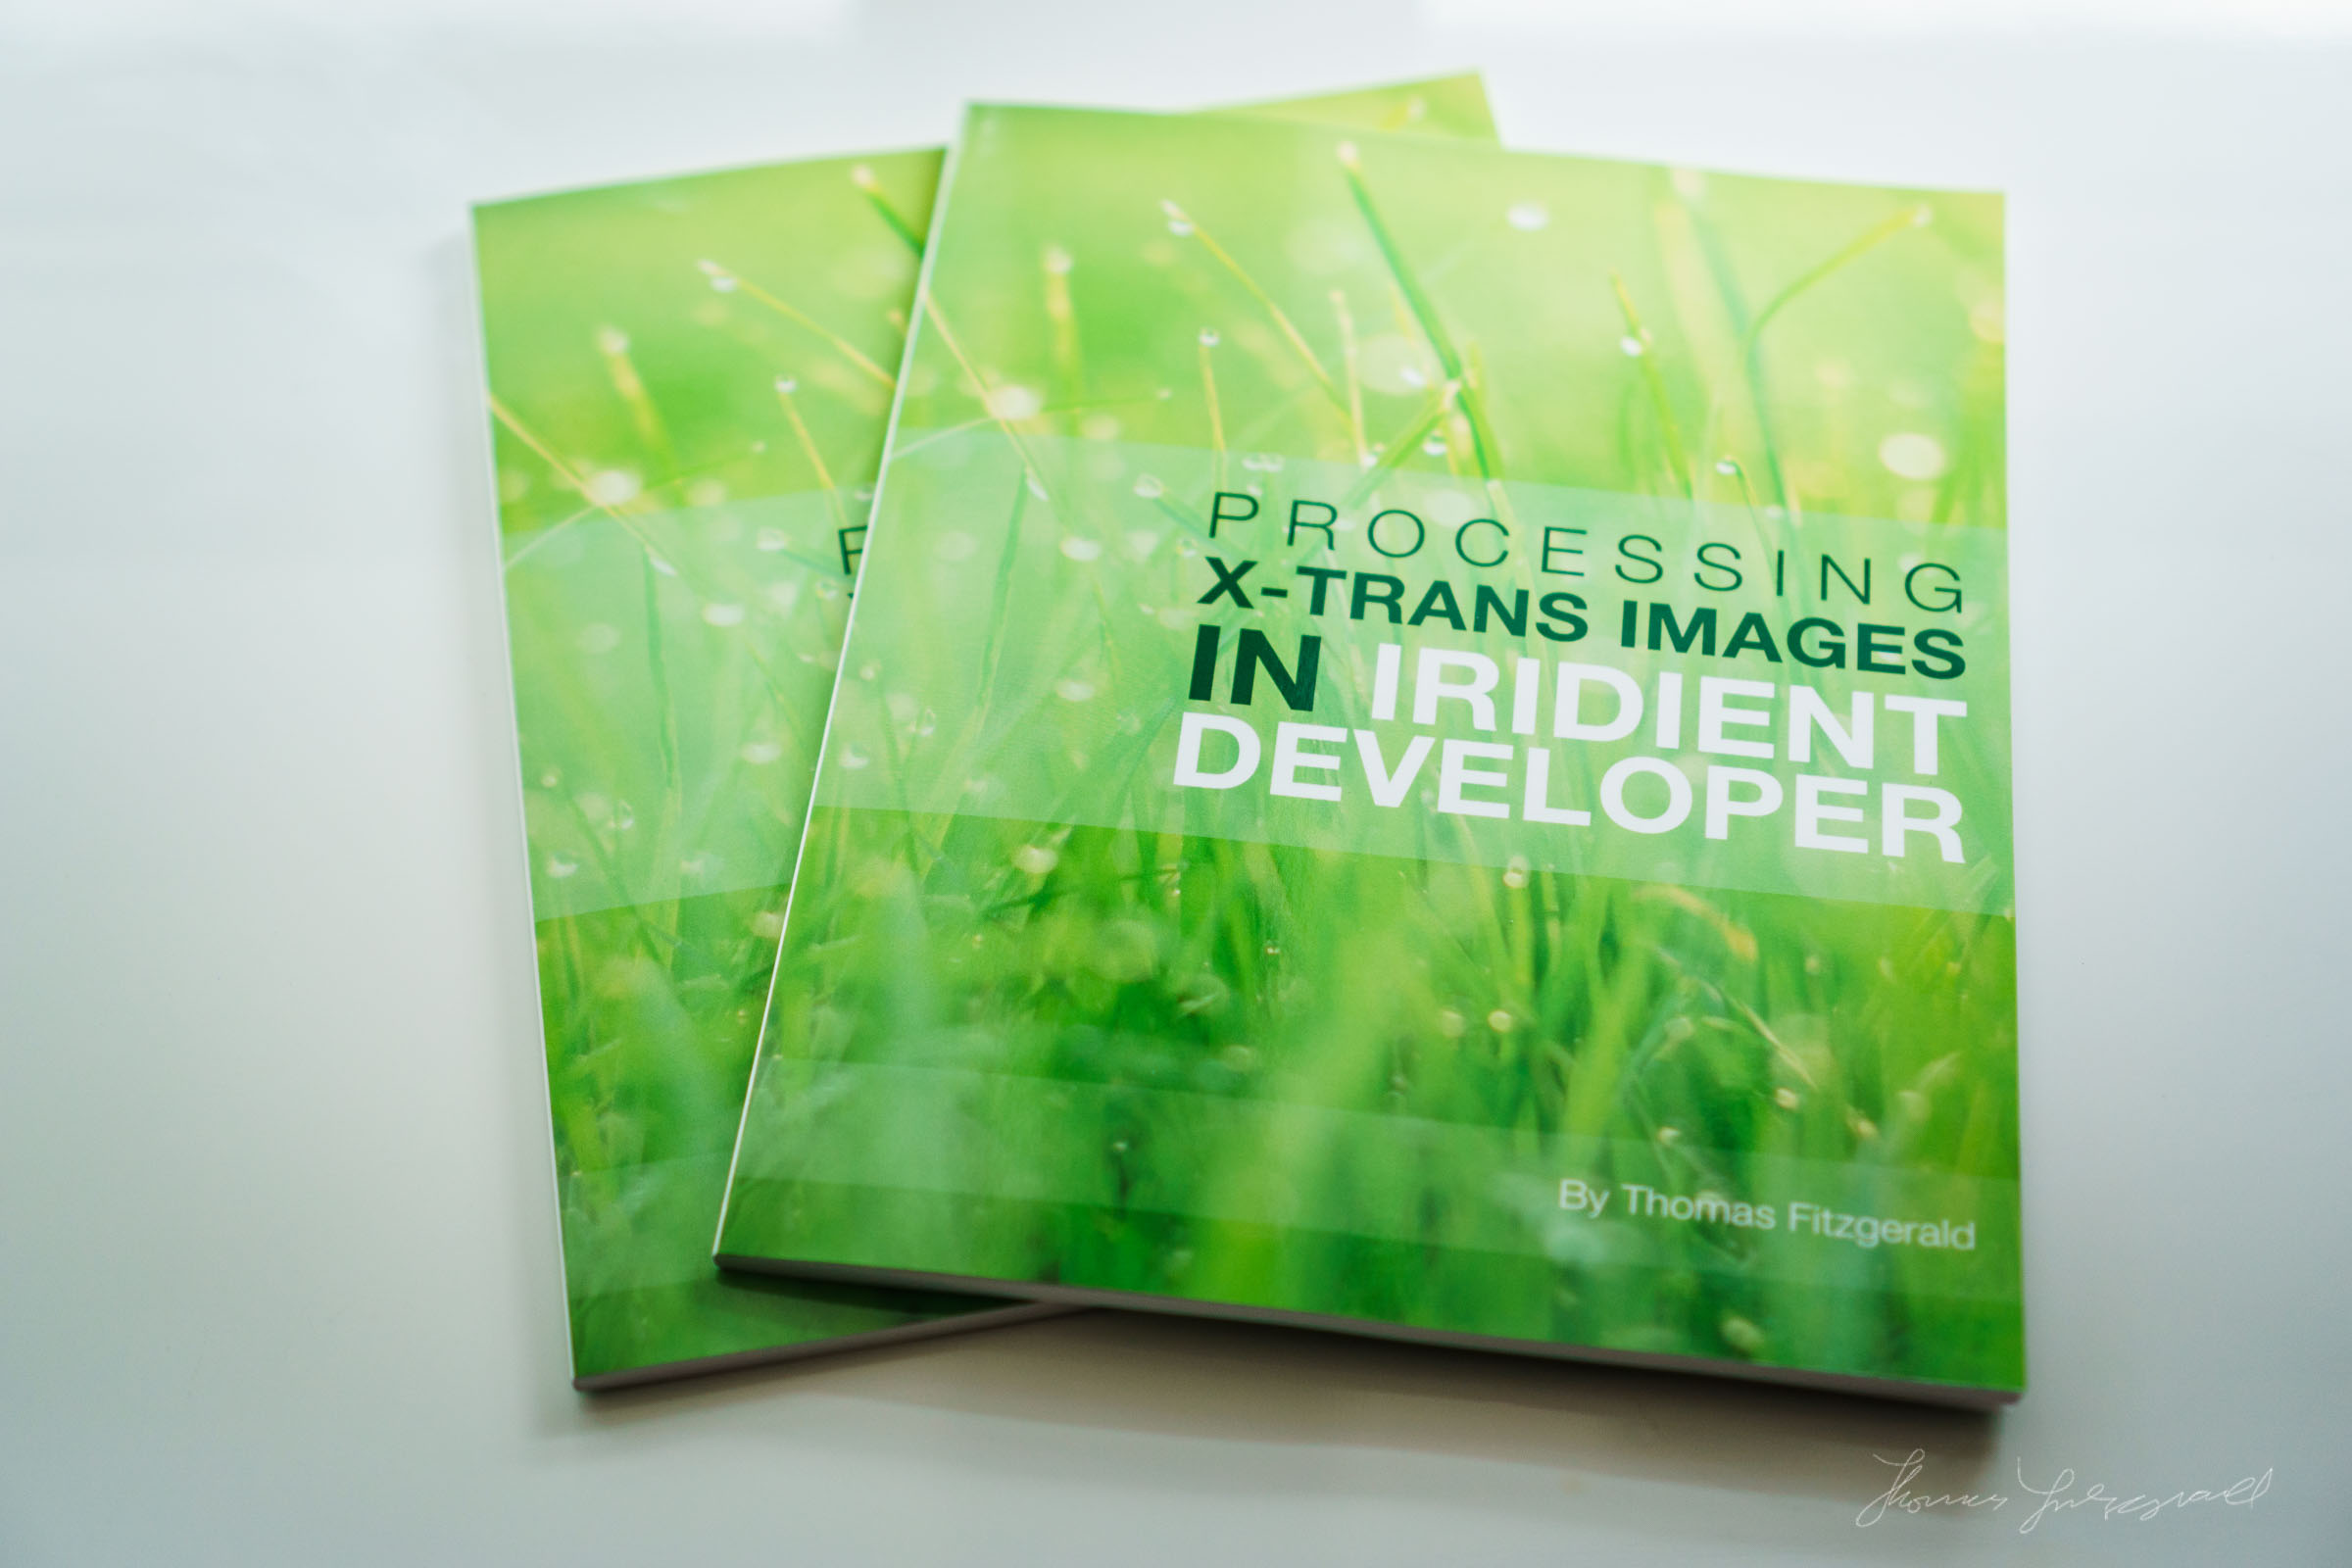 Limited Edition Print Version of my Iridient Developer Book